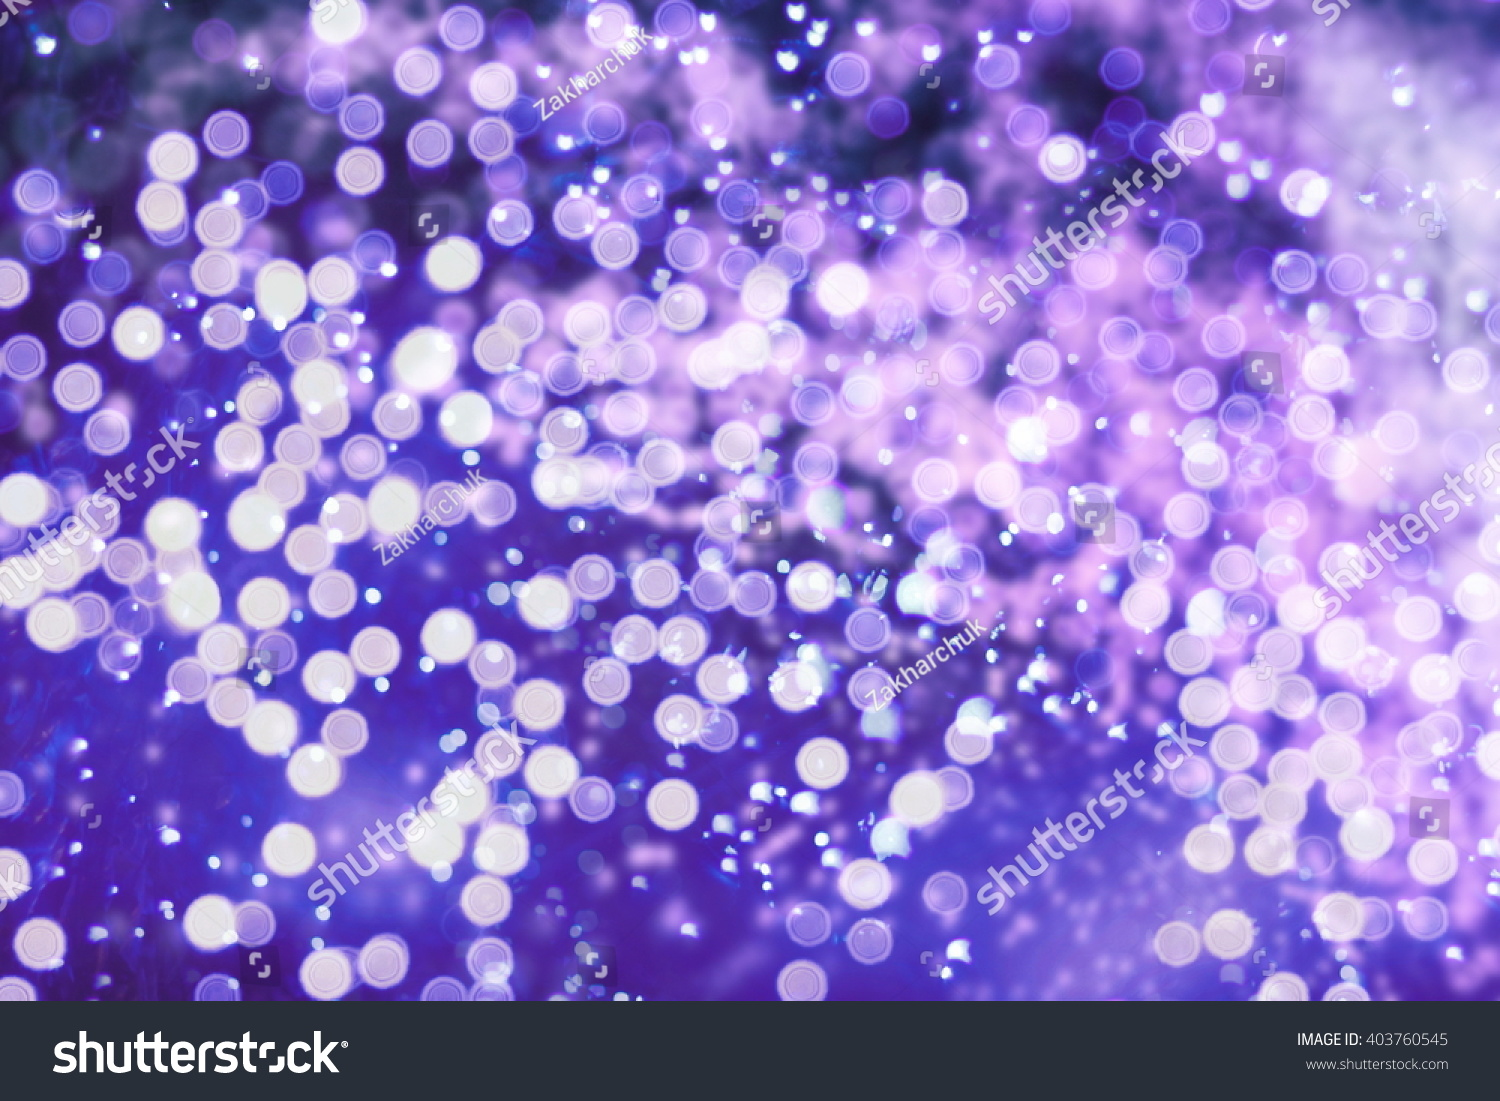 Abstract Blurred Silver Glittering Shine Bulbs Stock Photo Edit Now 403760545